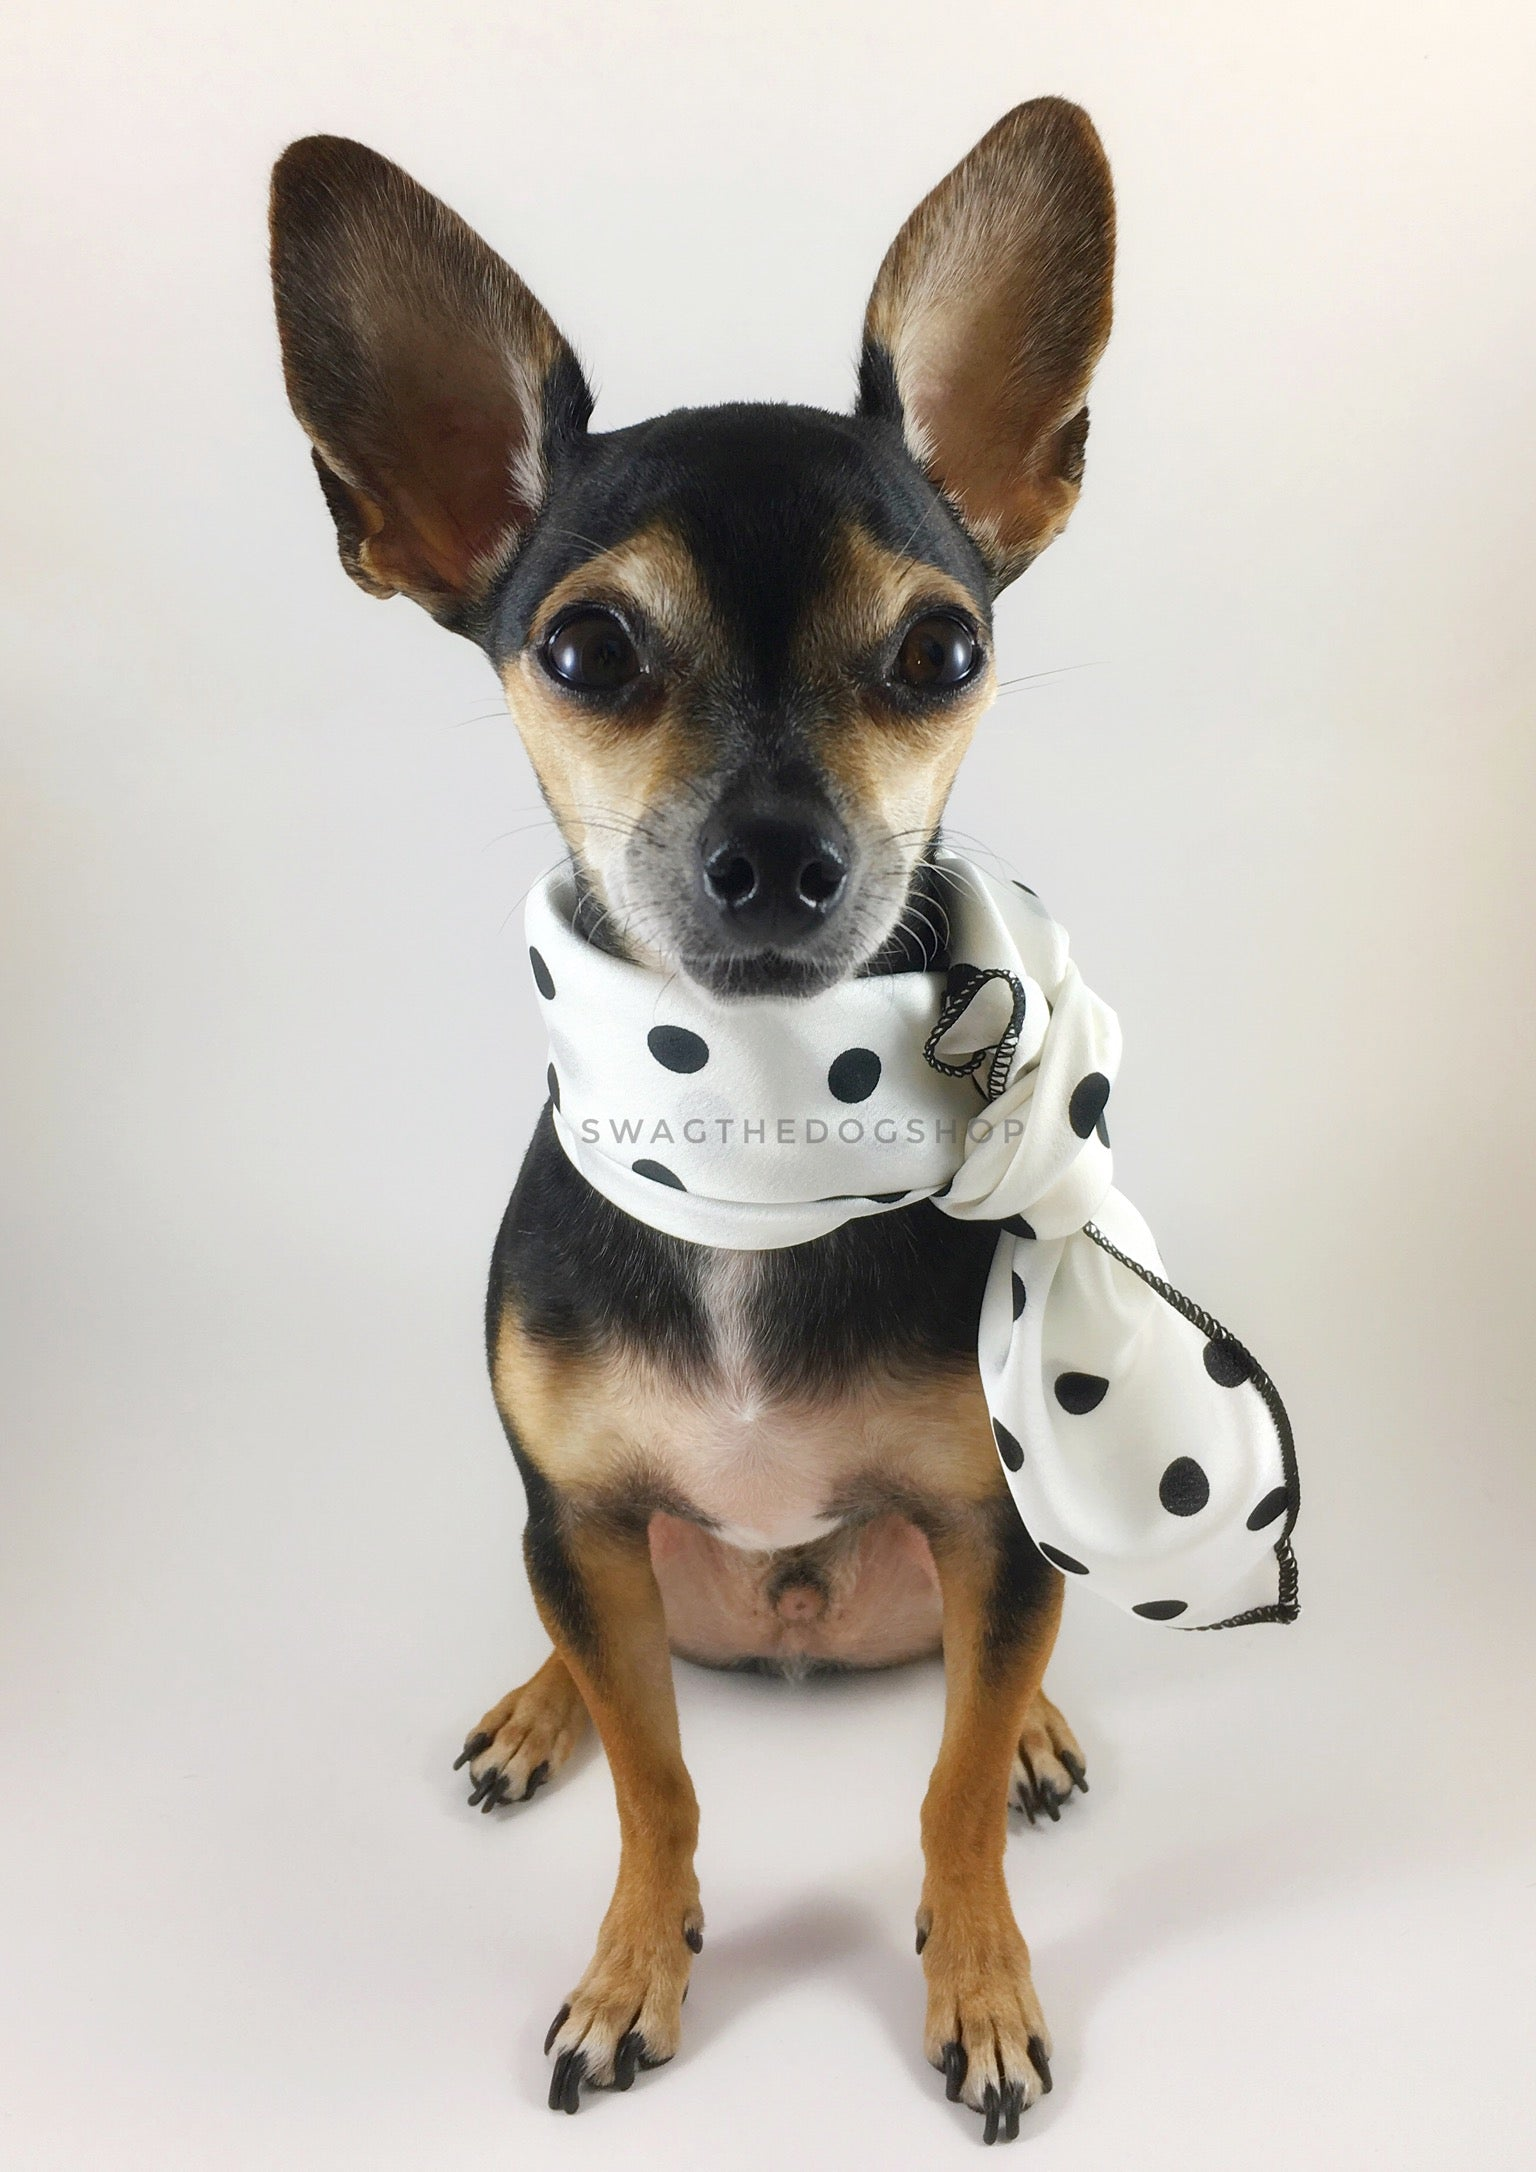 Polka Dot White Swagdana Scarf - Full Frontal View of Cute Chihuahua Wearing Swagdana Scarf as Neckerchief. Dog Bandana. Dog Scarf.